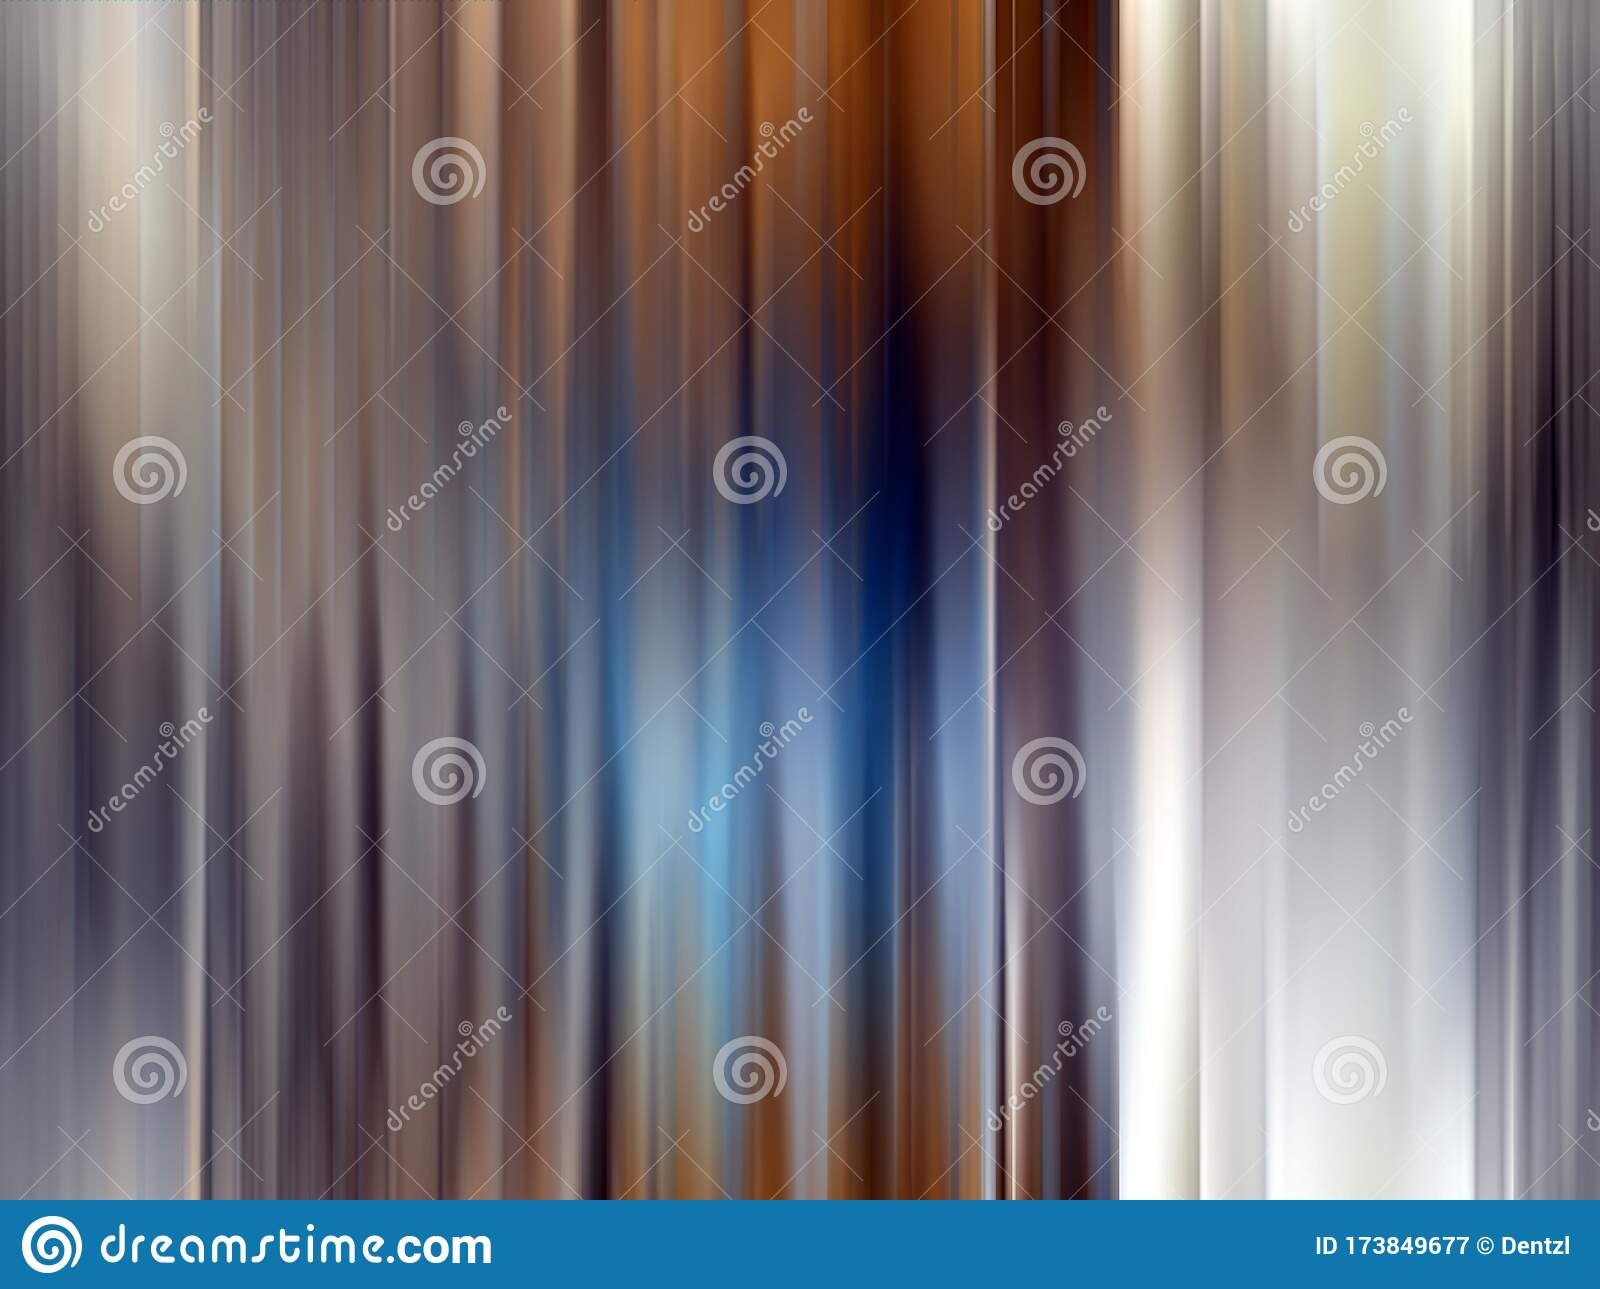 Abstract With Look Of Stage Lights On Curtains Stock Image Image Of Backdrop Abstract 173849677